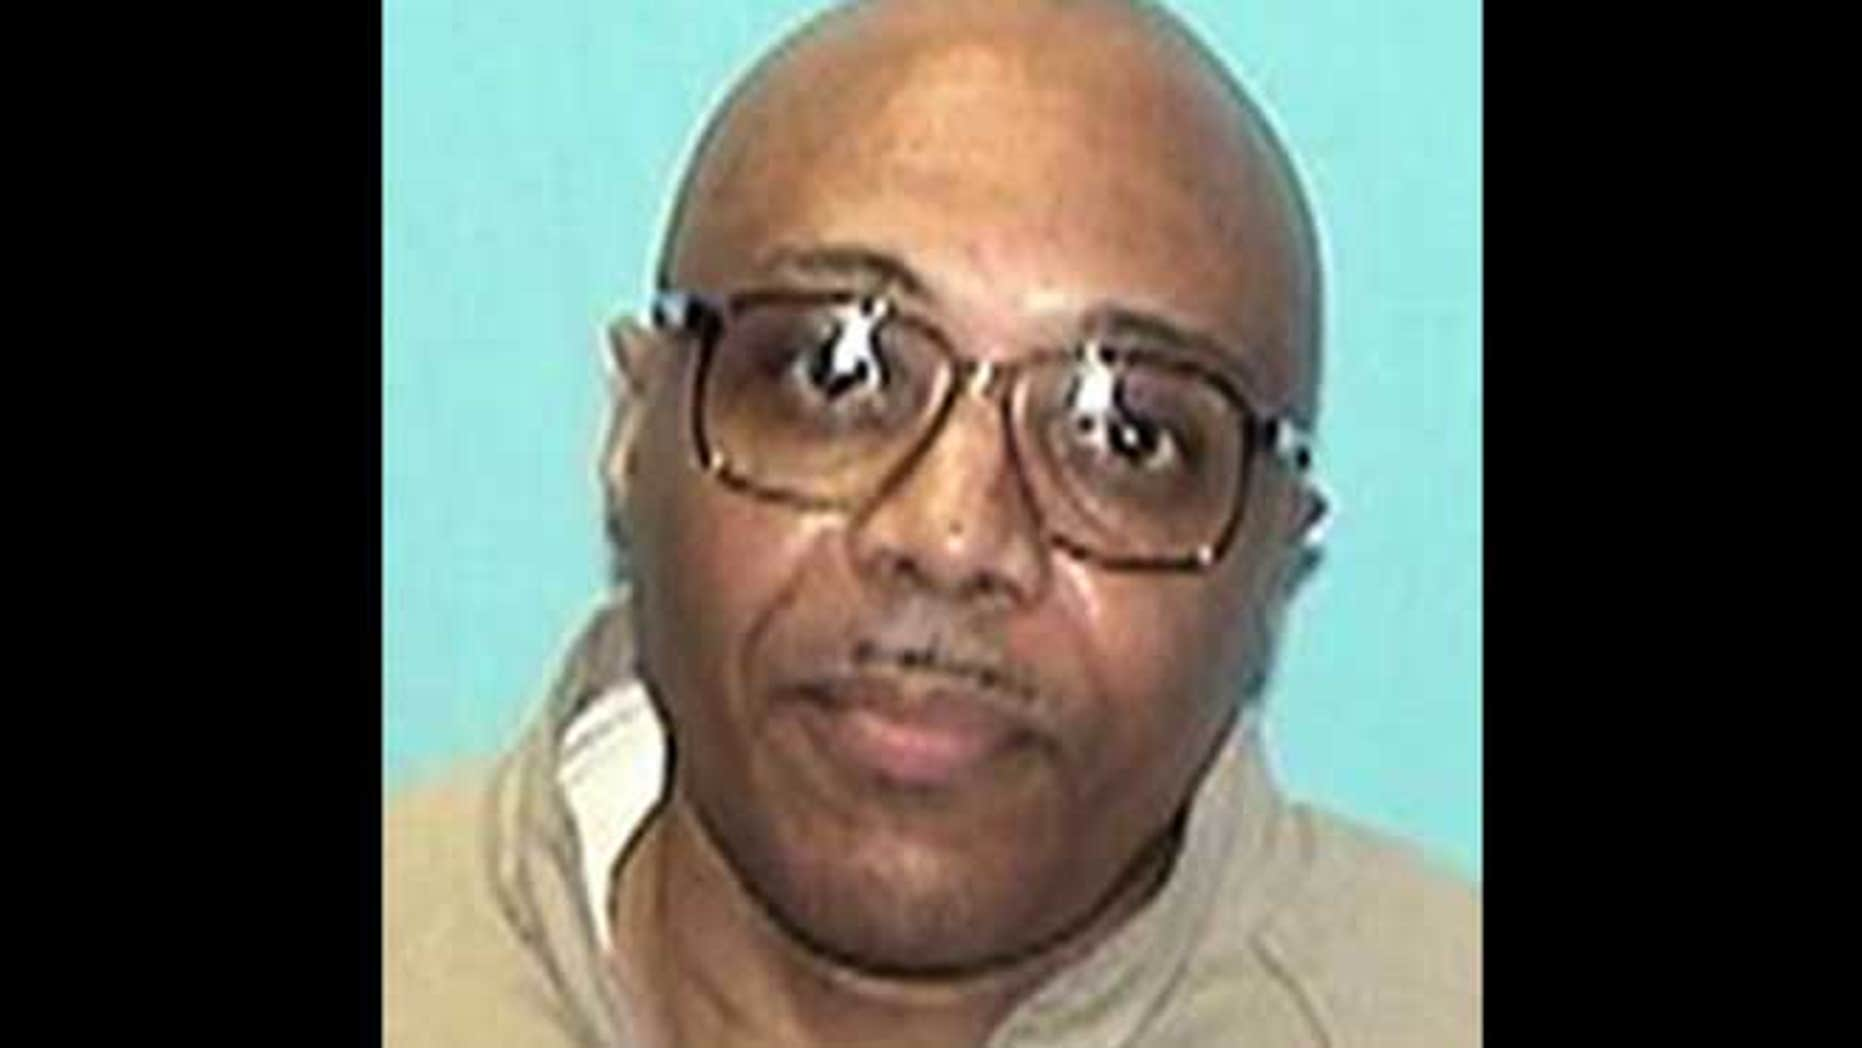 This undated photo provided by the Illinois Department of Corrections shows inmate Andre Davis.